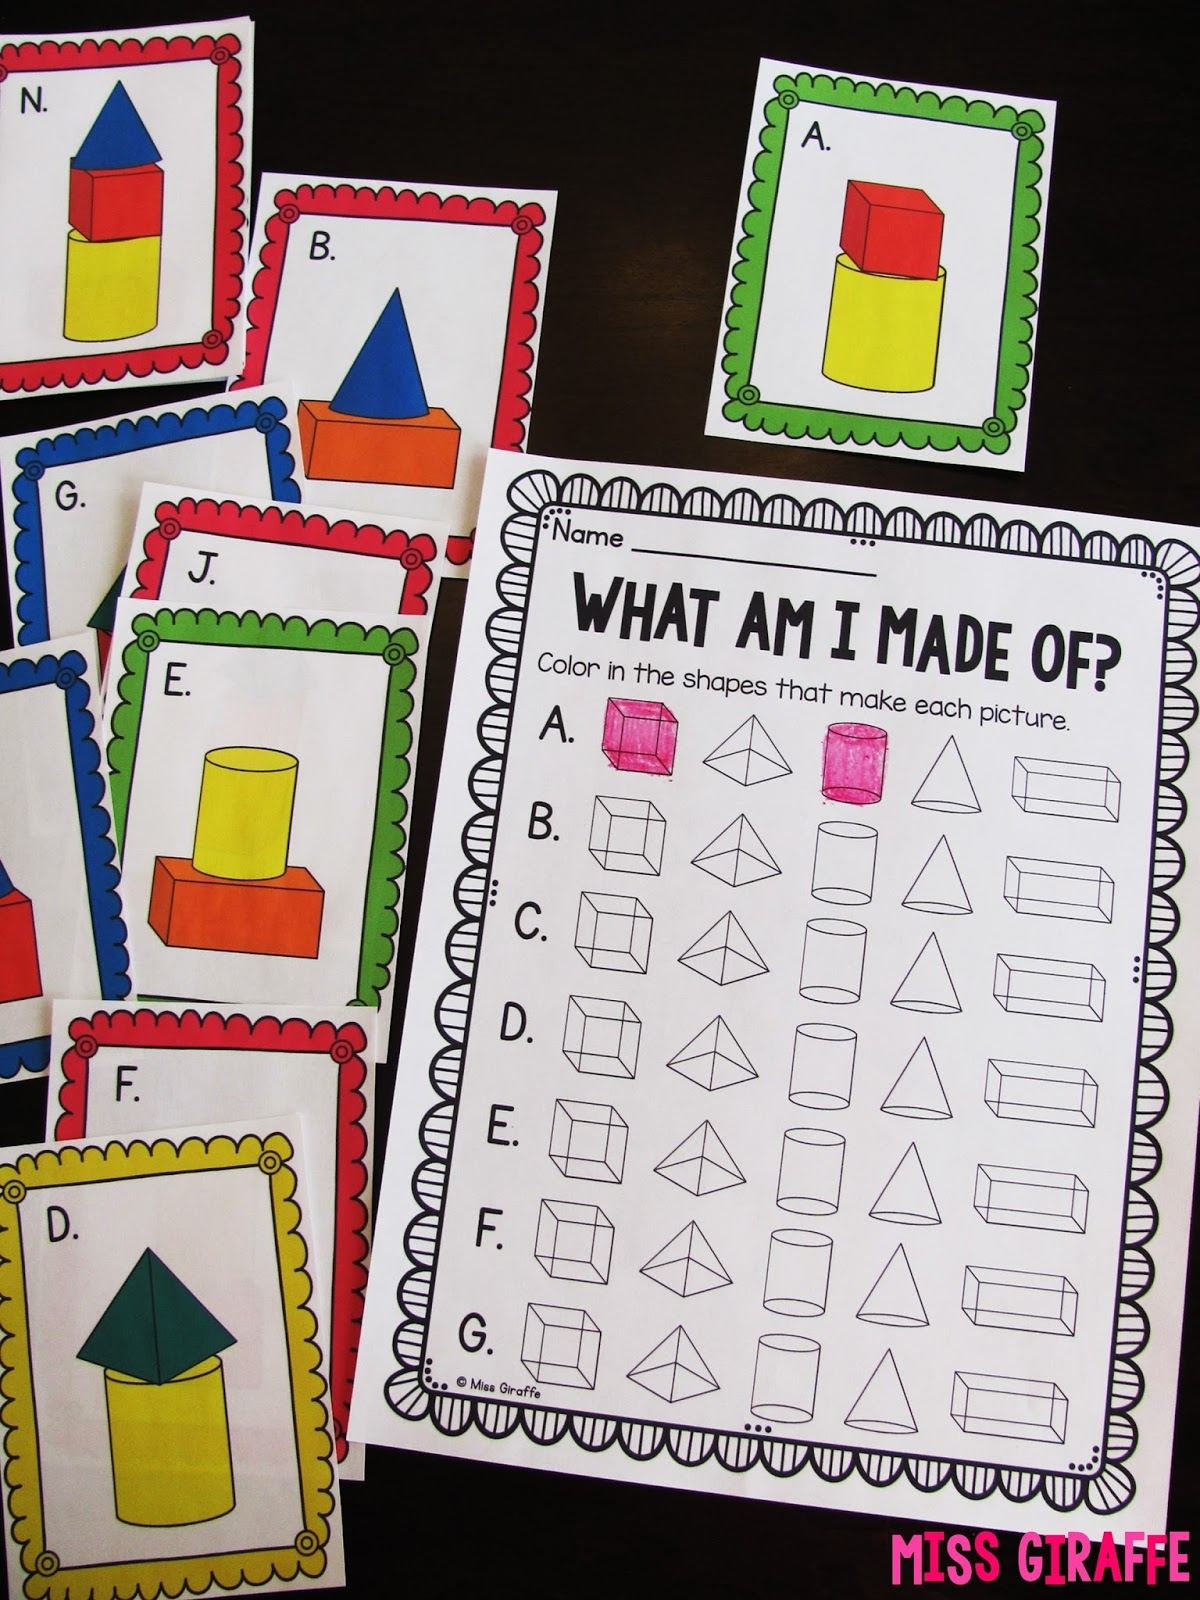 15 fun hands on activities for learning about 2d and 3d